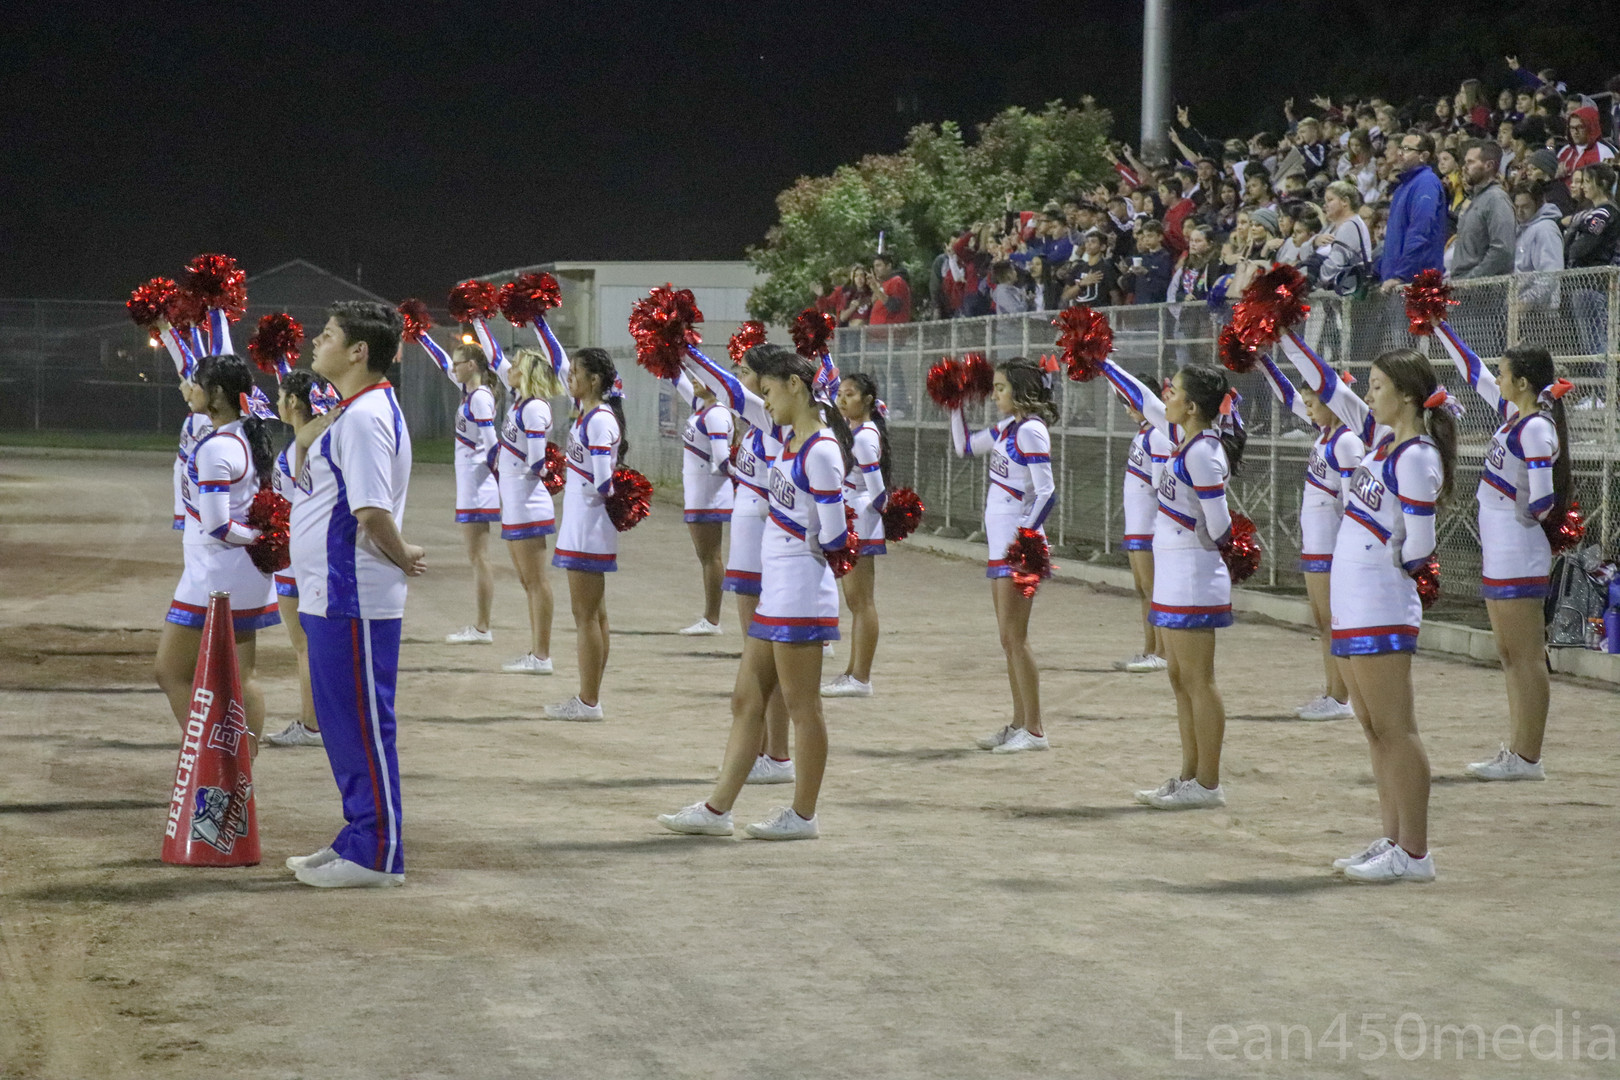 EU Vs. Manteca [Cheer]-6.JPG